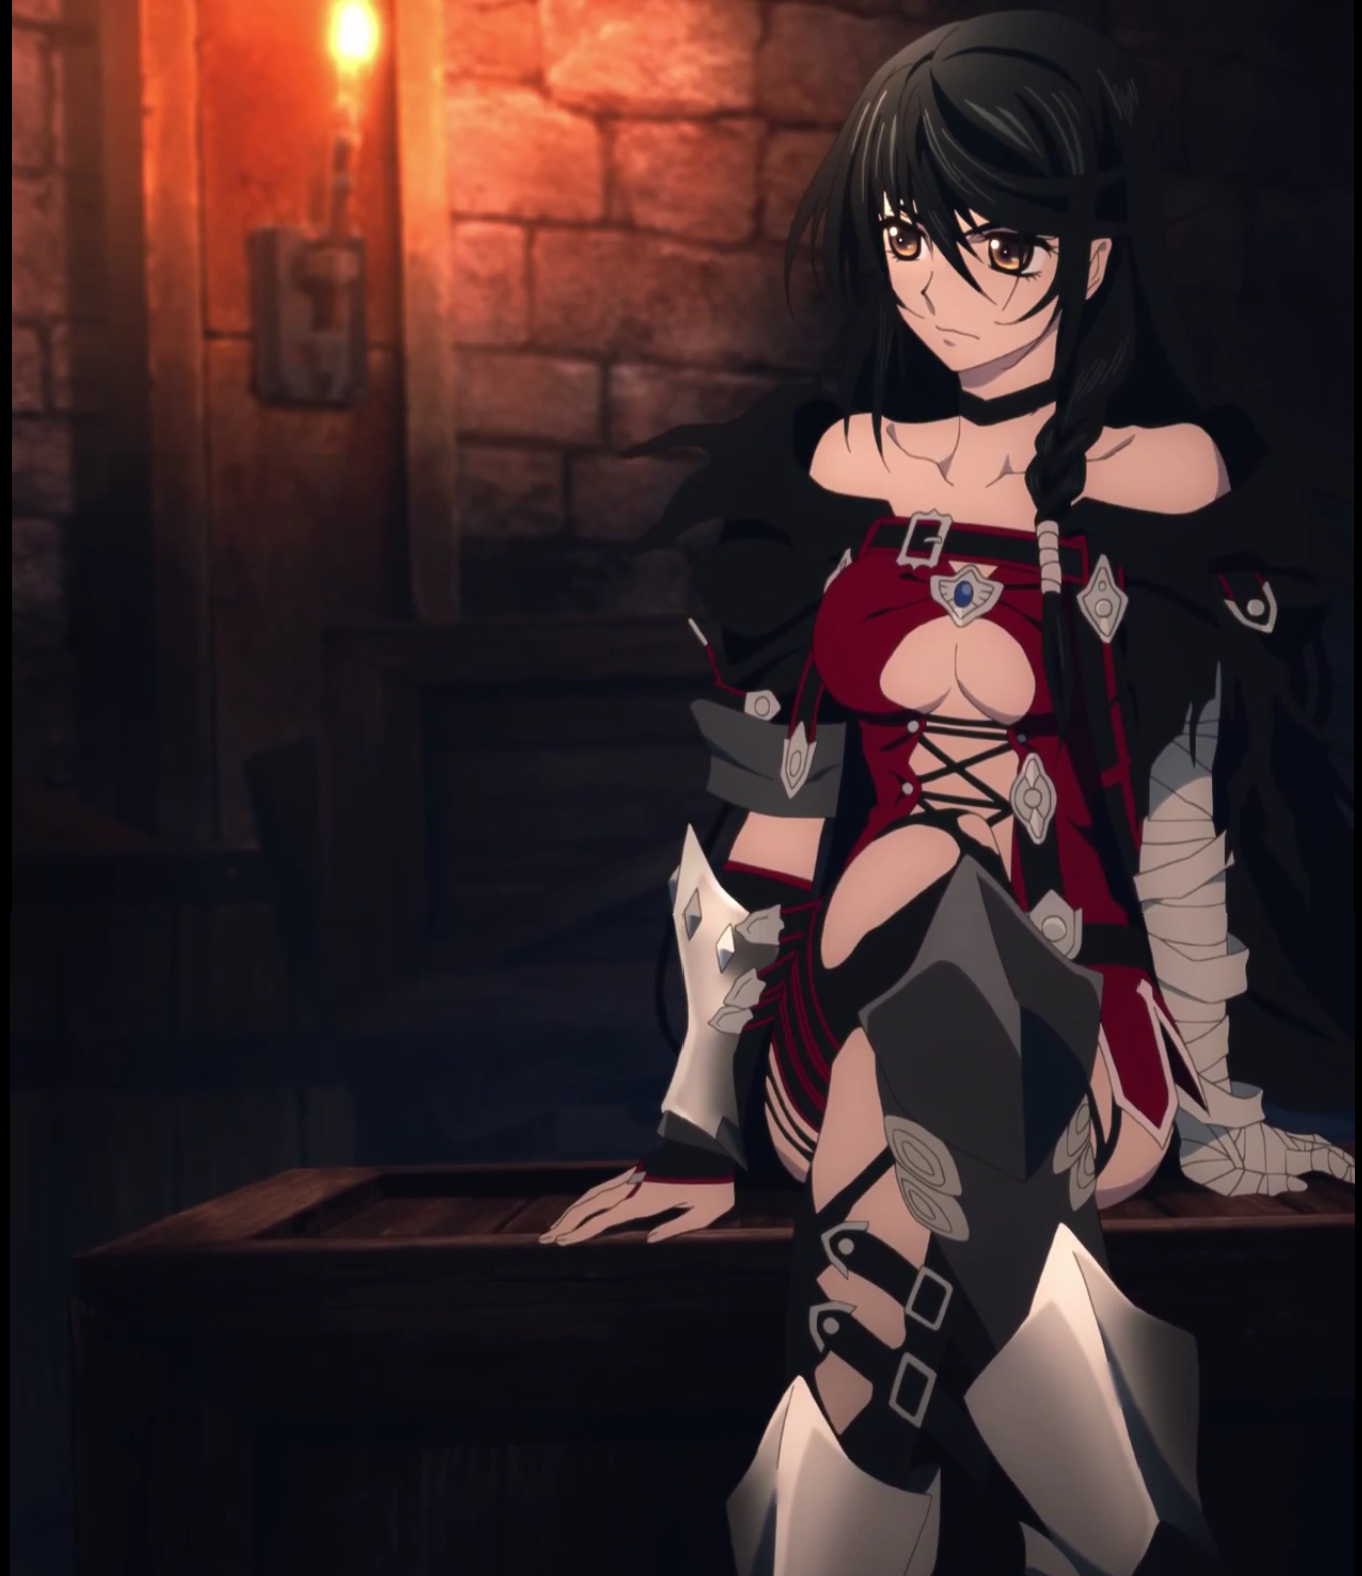 tales_of_berseria____velvet_crowe_by_tee